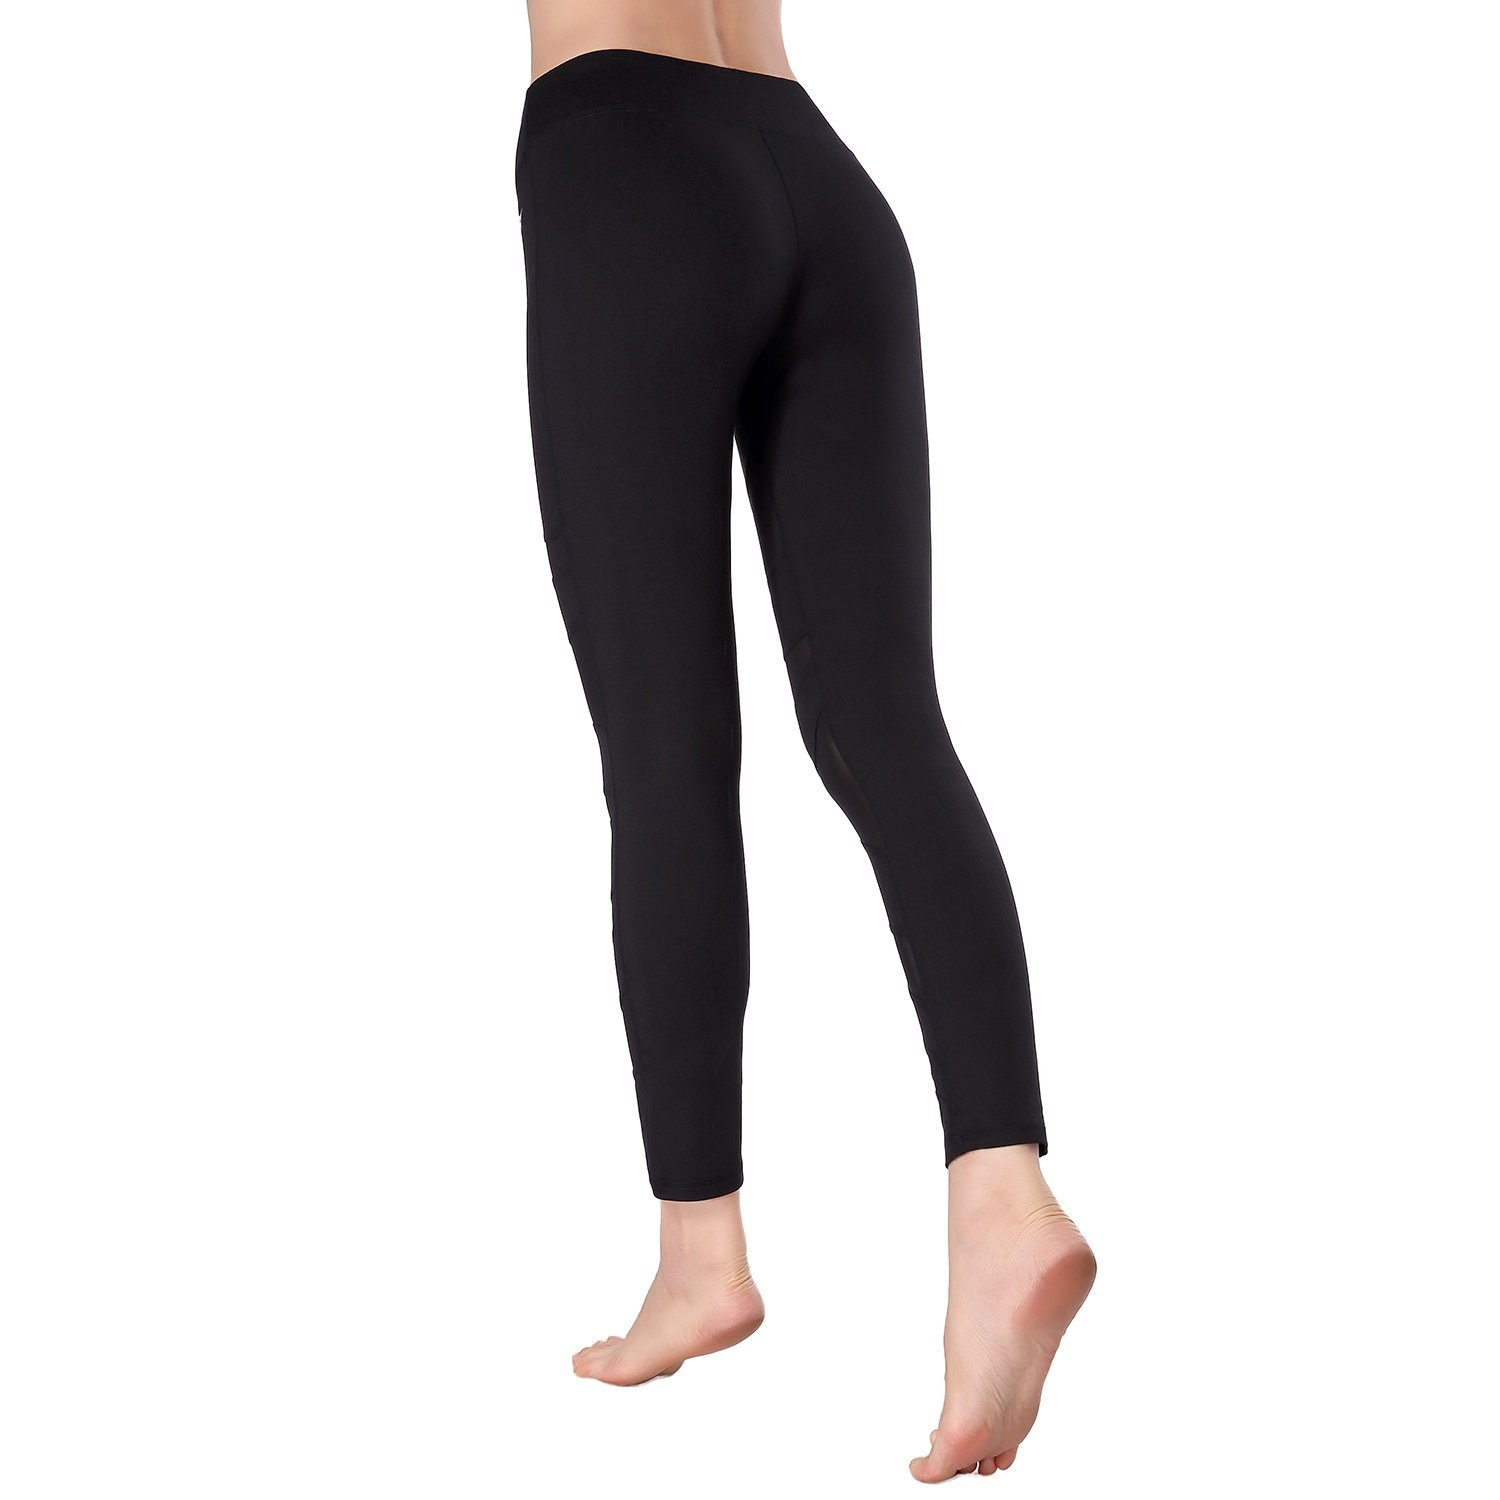 Beepeak Women's Long Mesh Yoga Pants Leggings